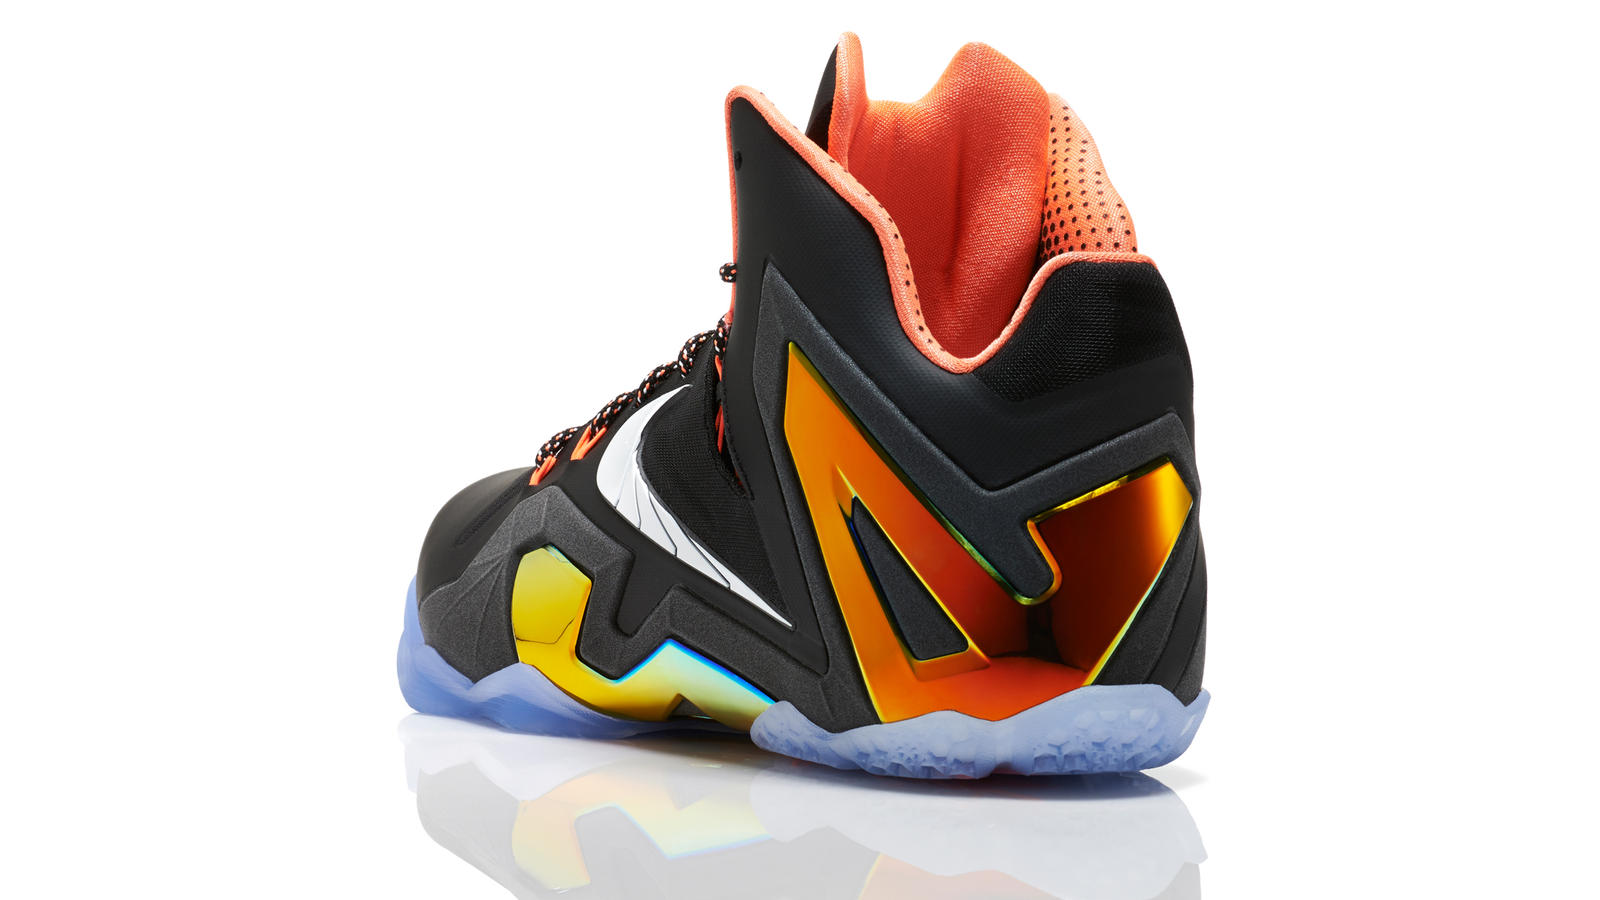 lebron_11_quest_001_3qtr_back_low_0197_fb